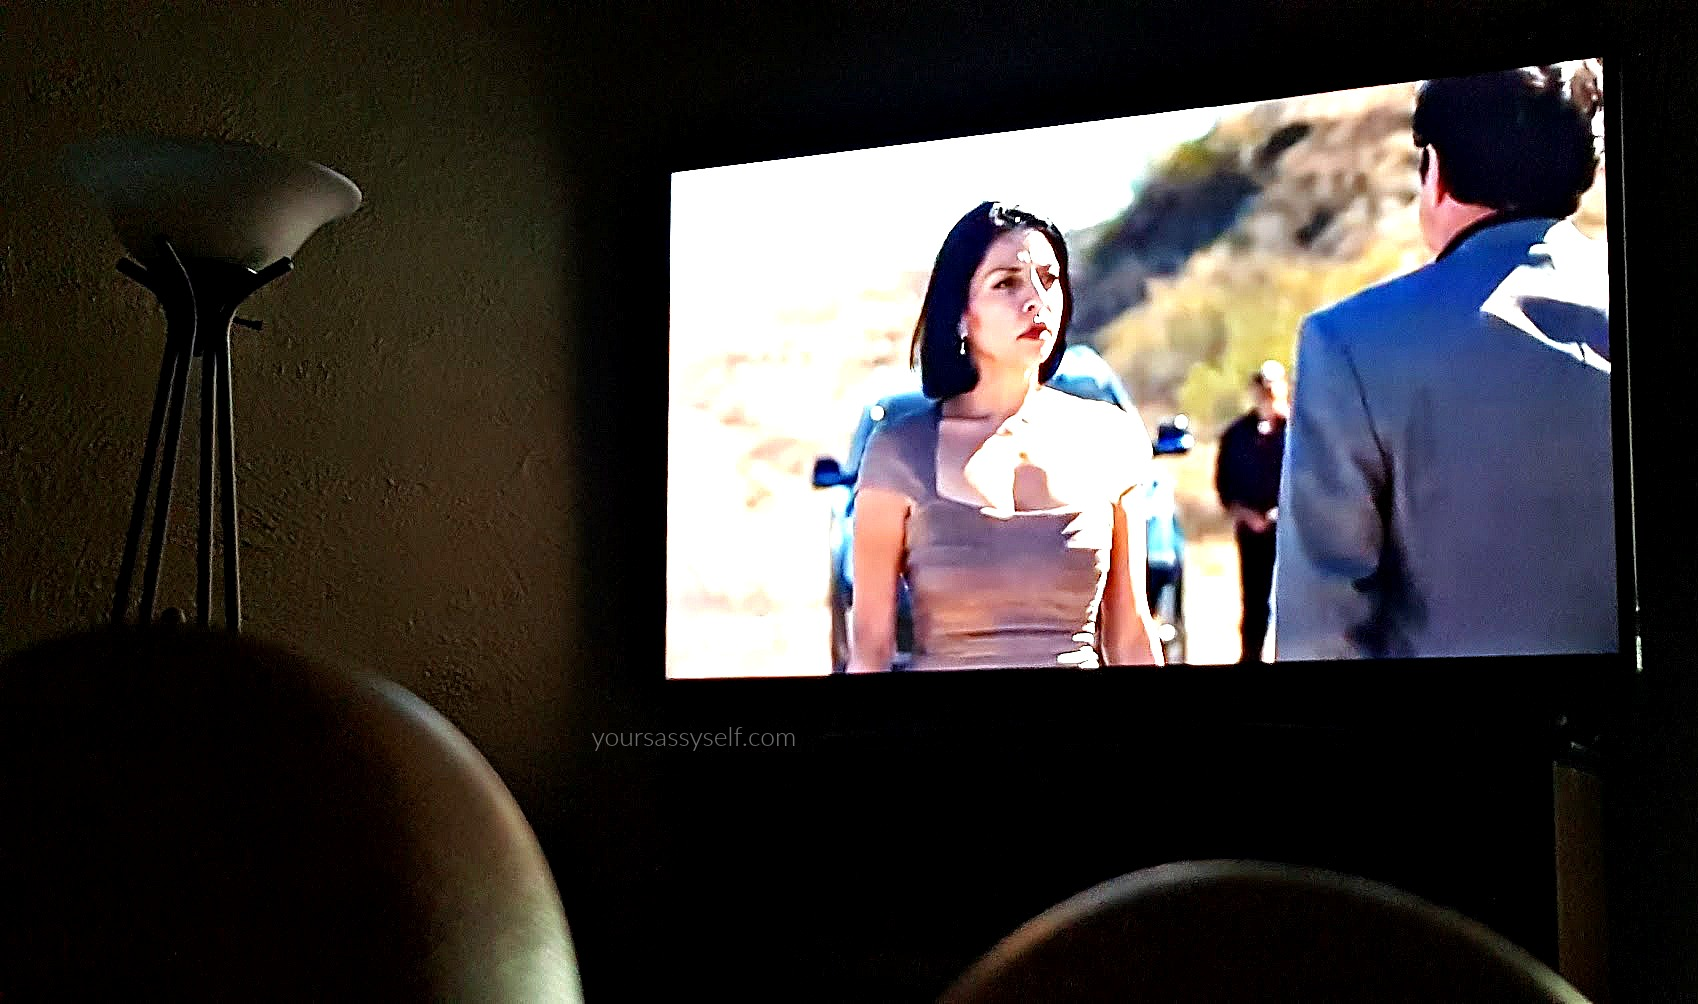 Watching Queen of the South on TV - yoursassyself.com